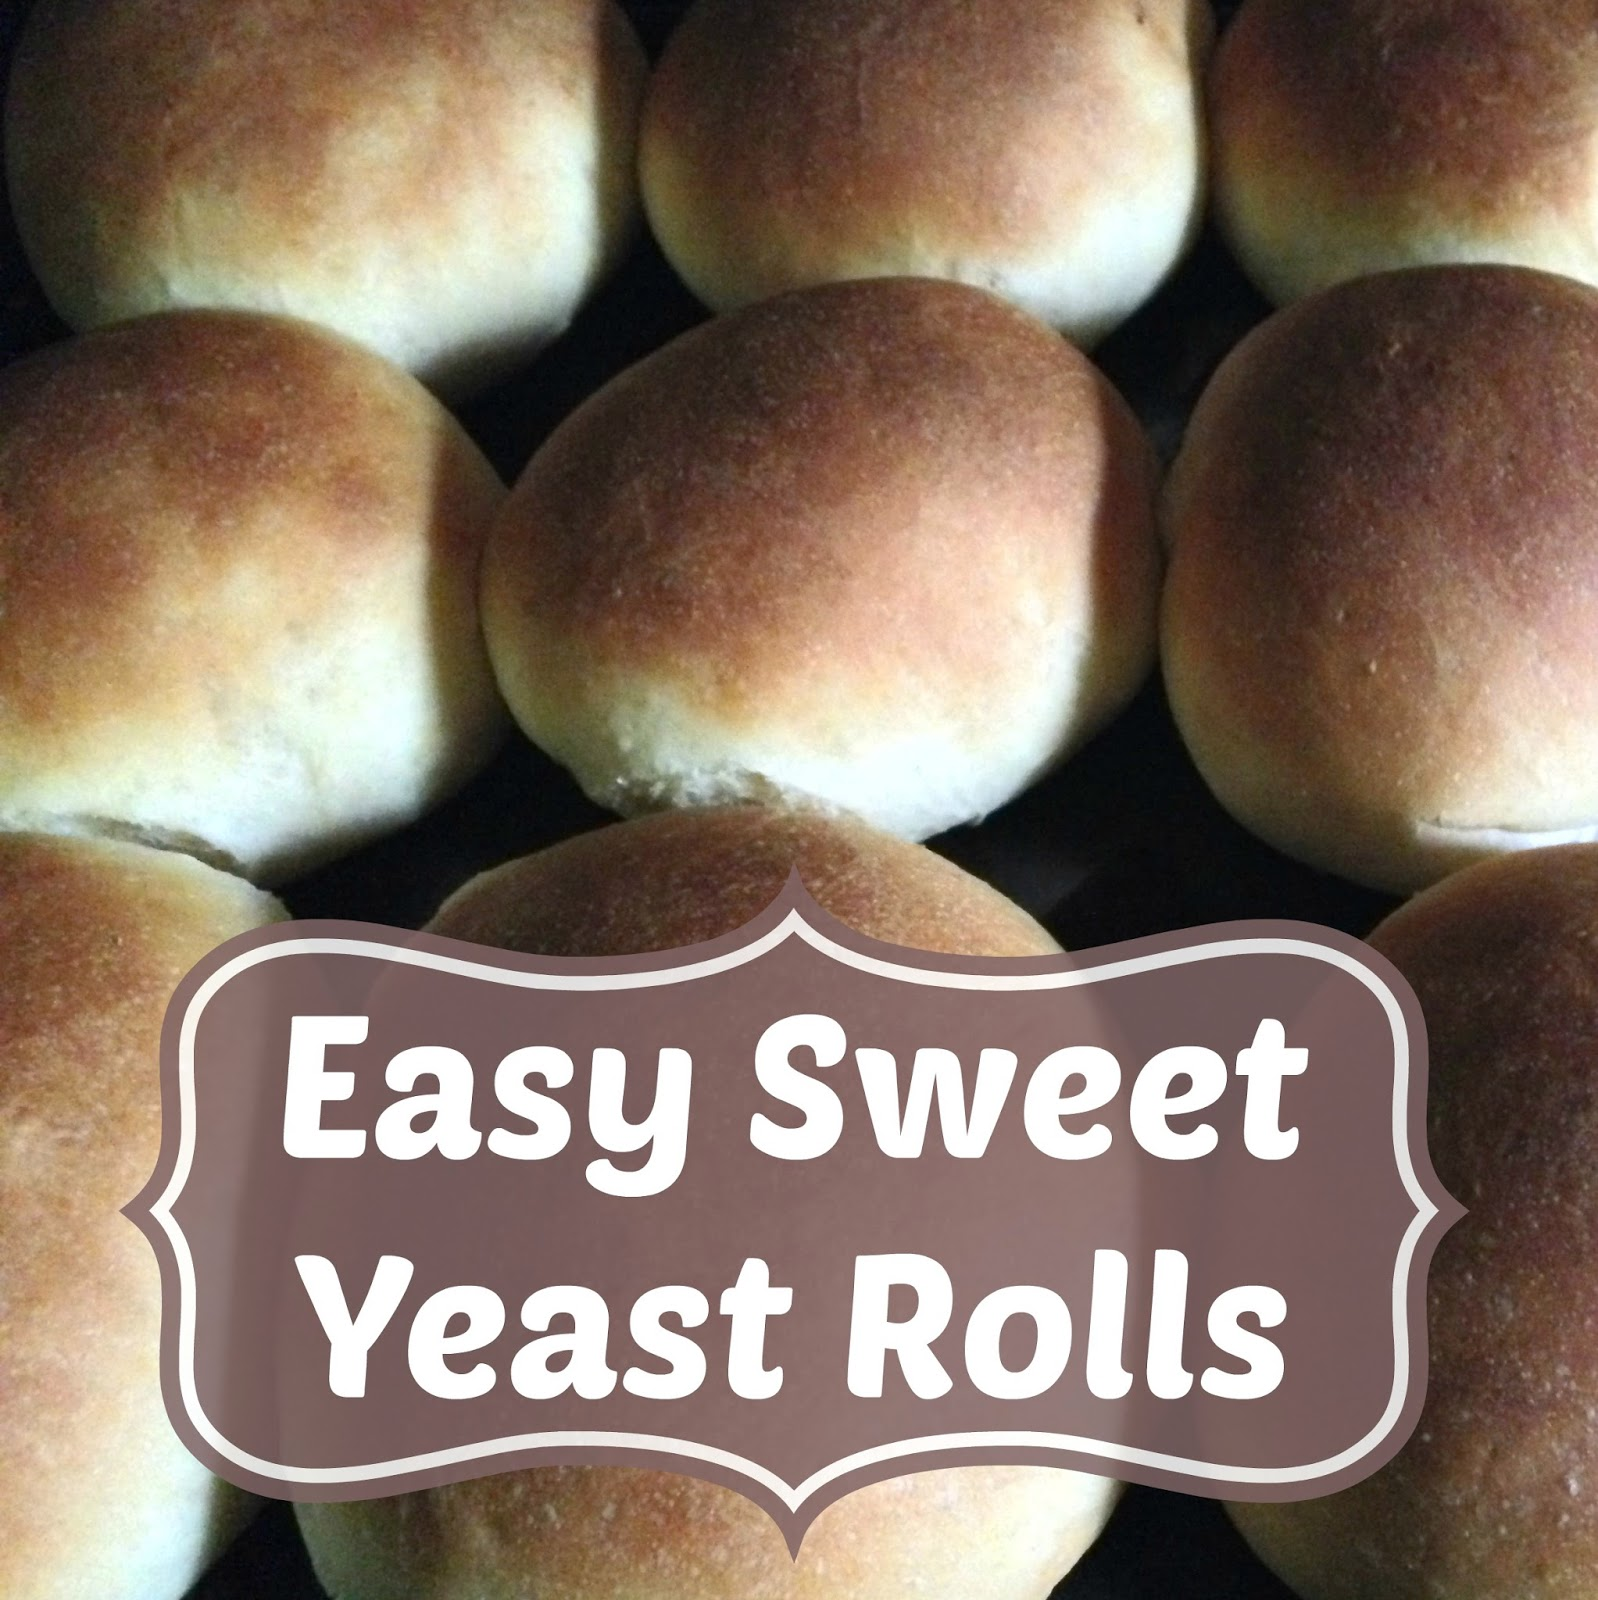 Easy Sweet Yeast Rolls